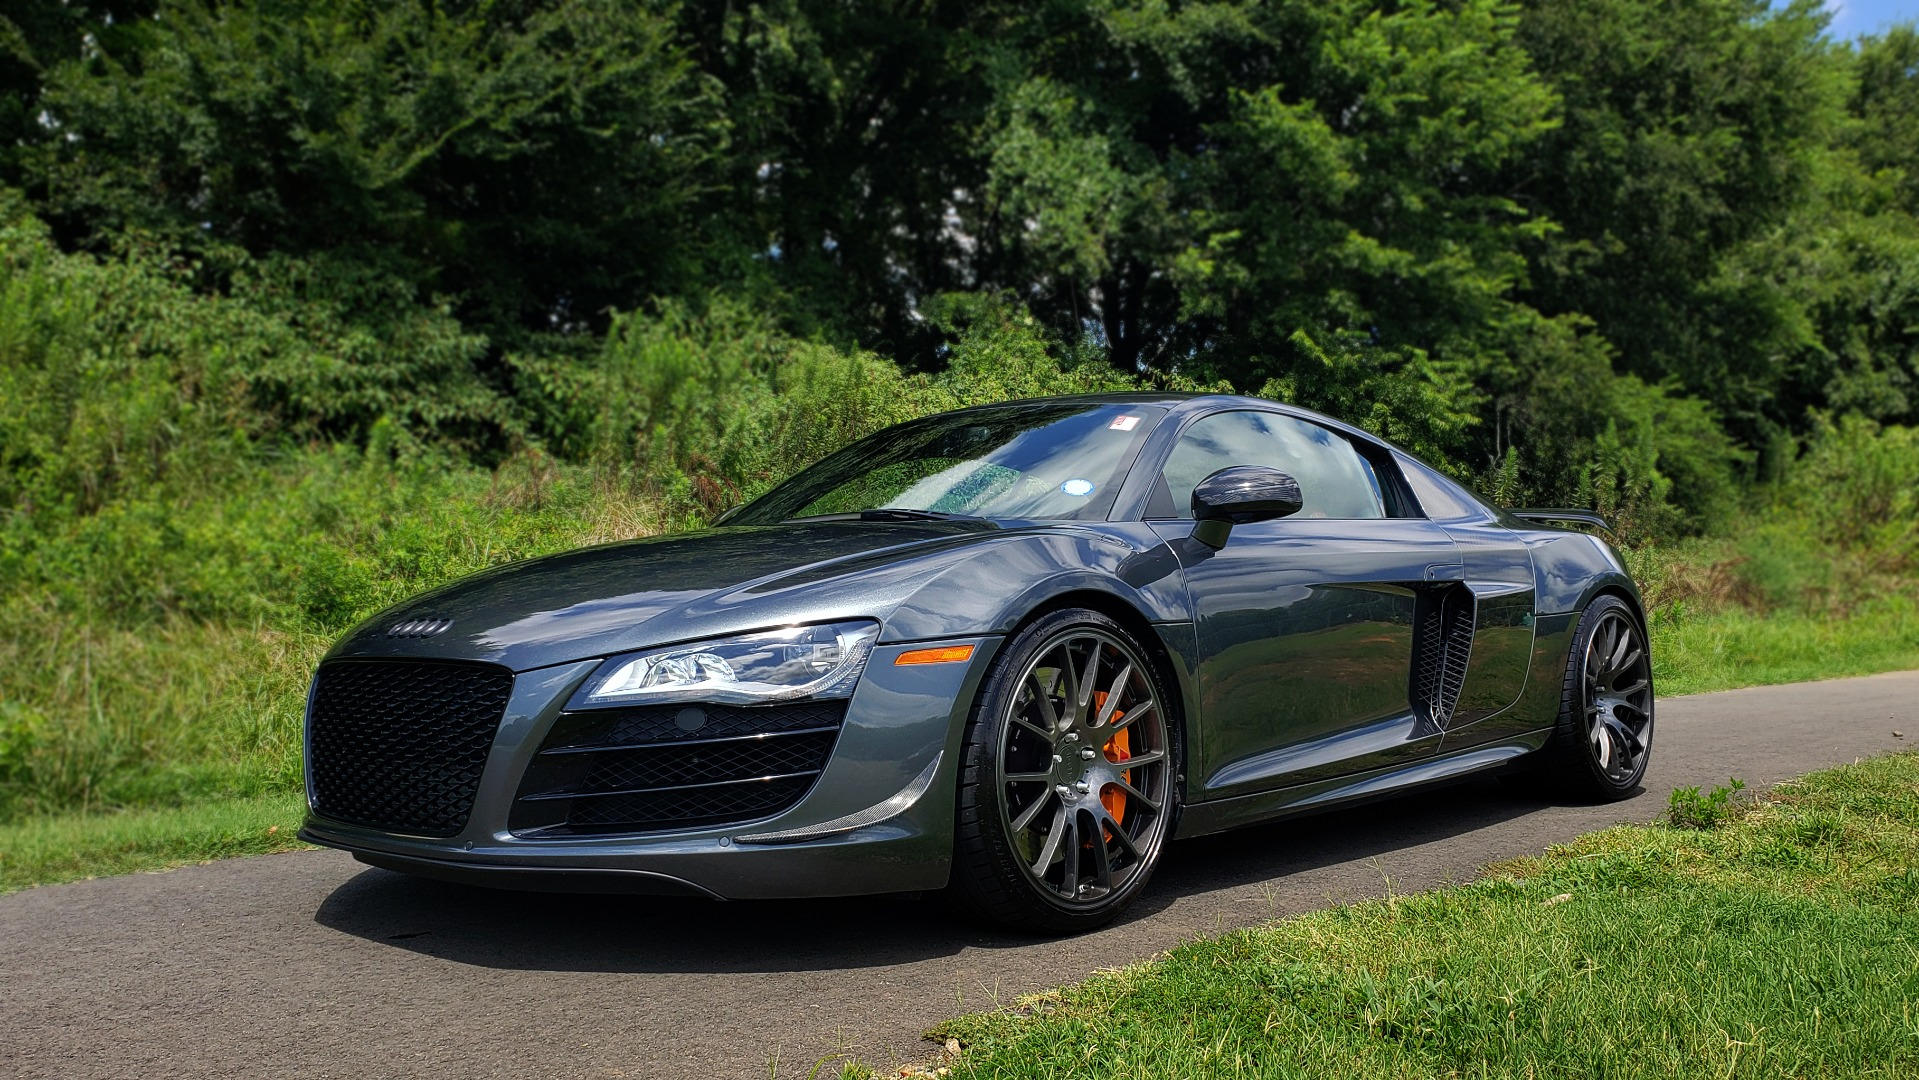 Used 2010 Audi R8 5.2L V10 SUPERCHARGED / AWD / COUPE / CUSTOM TUNED for sale $82,795 at Formula Imports in Charlotte NC 28227 5